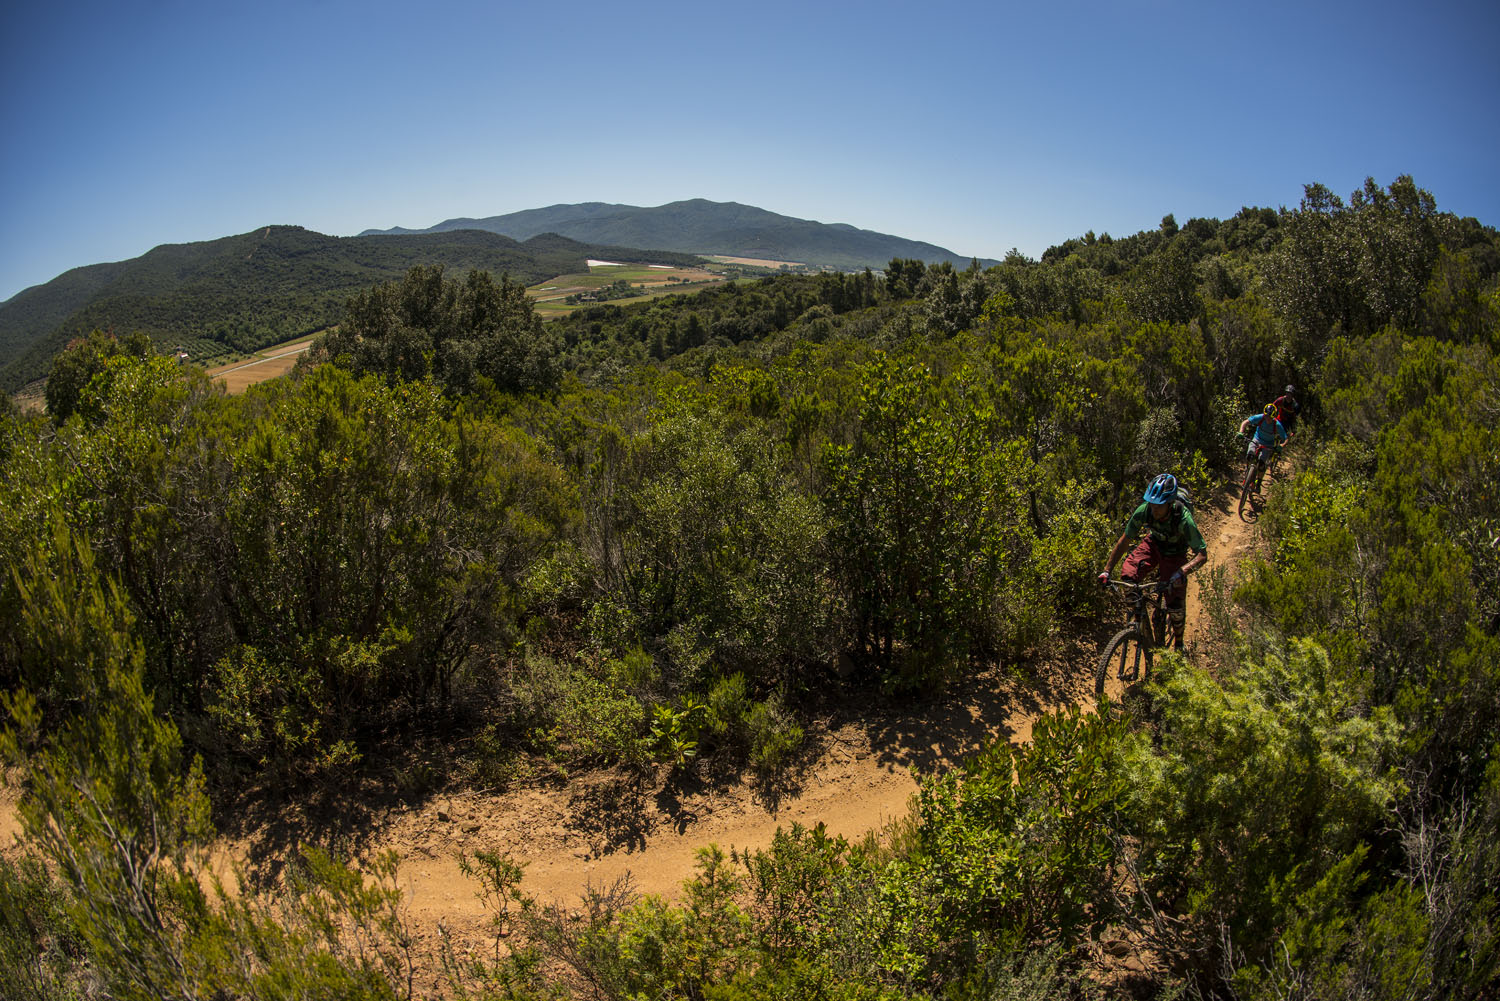 Mountain Biking UK Punta Ala, Tuscany, Italy PIC © Andy Lloyd www.andylloyd.photography